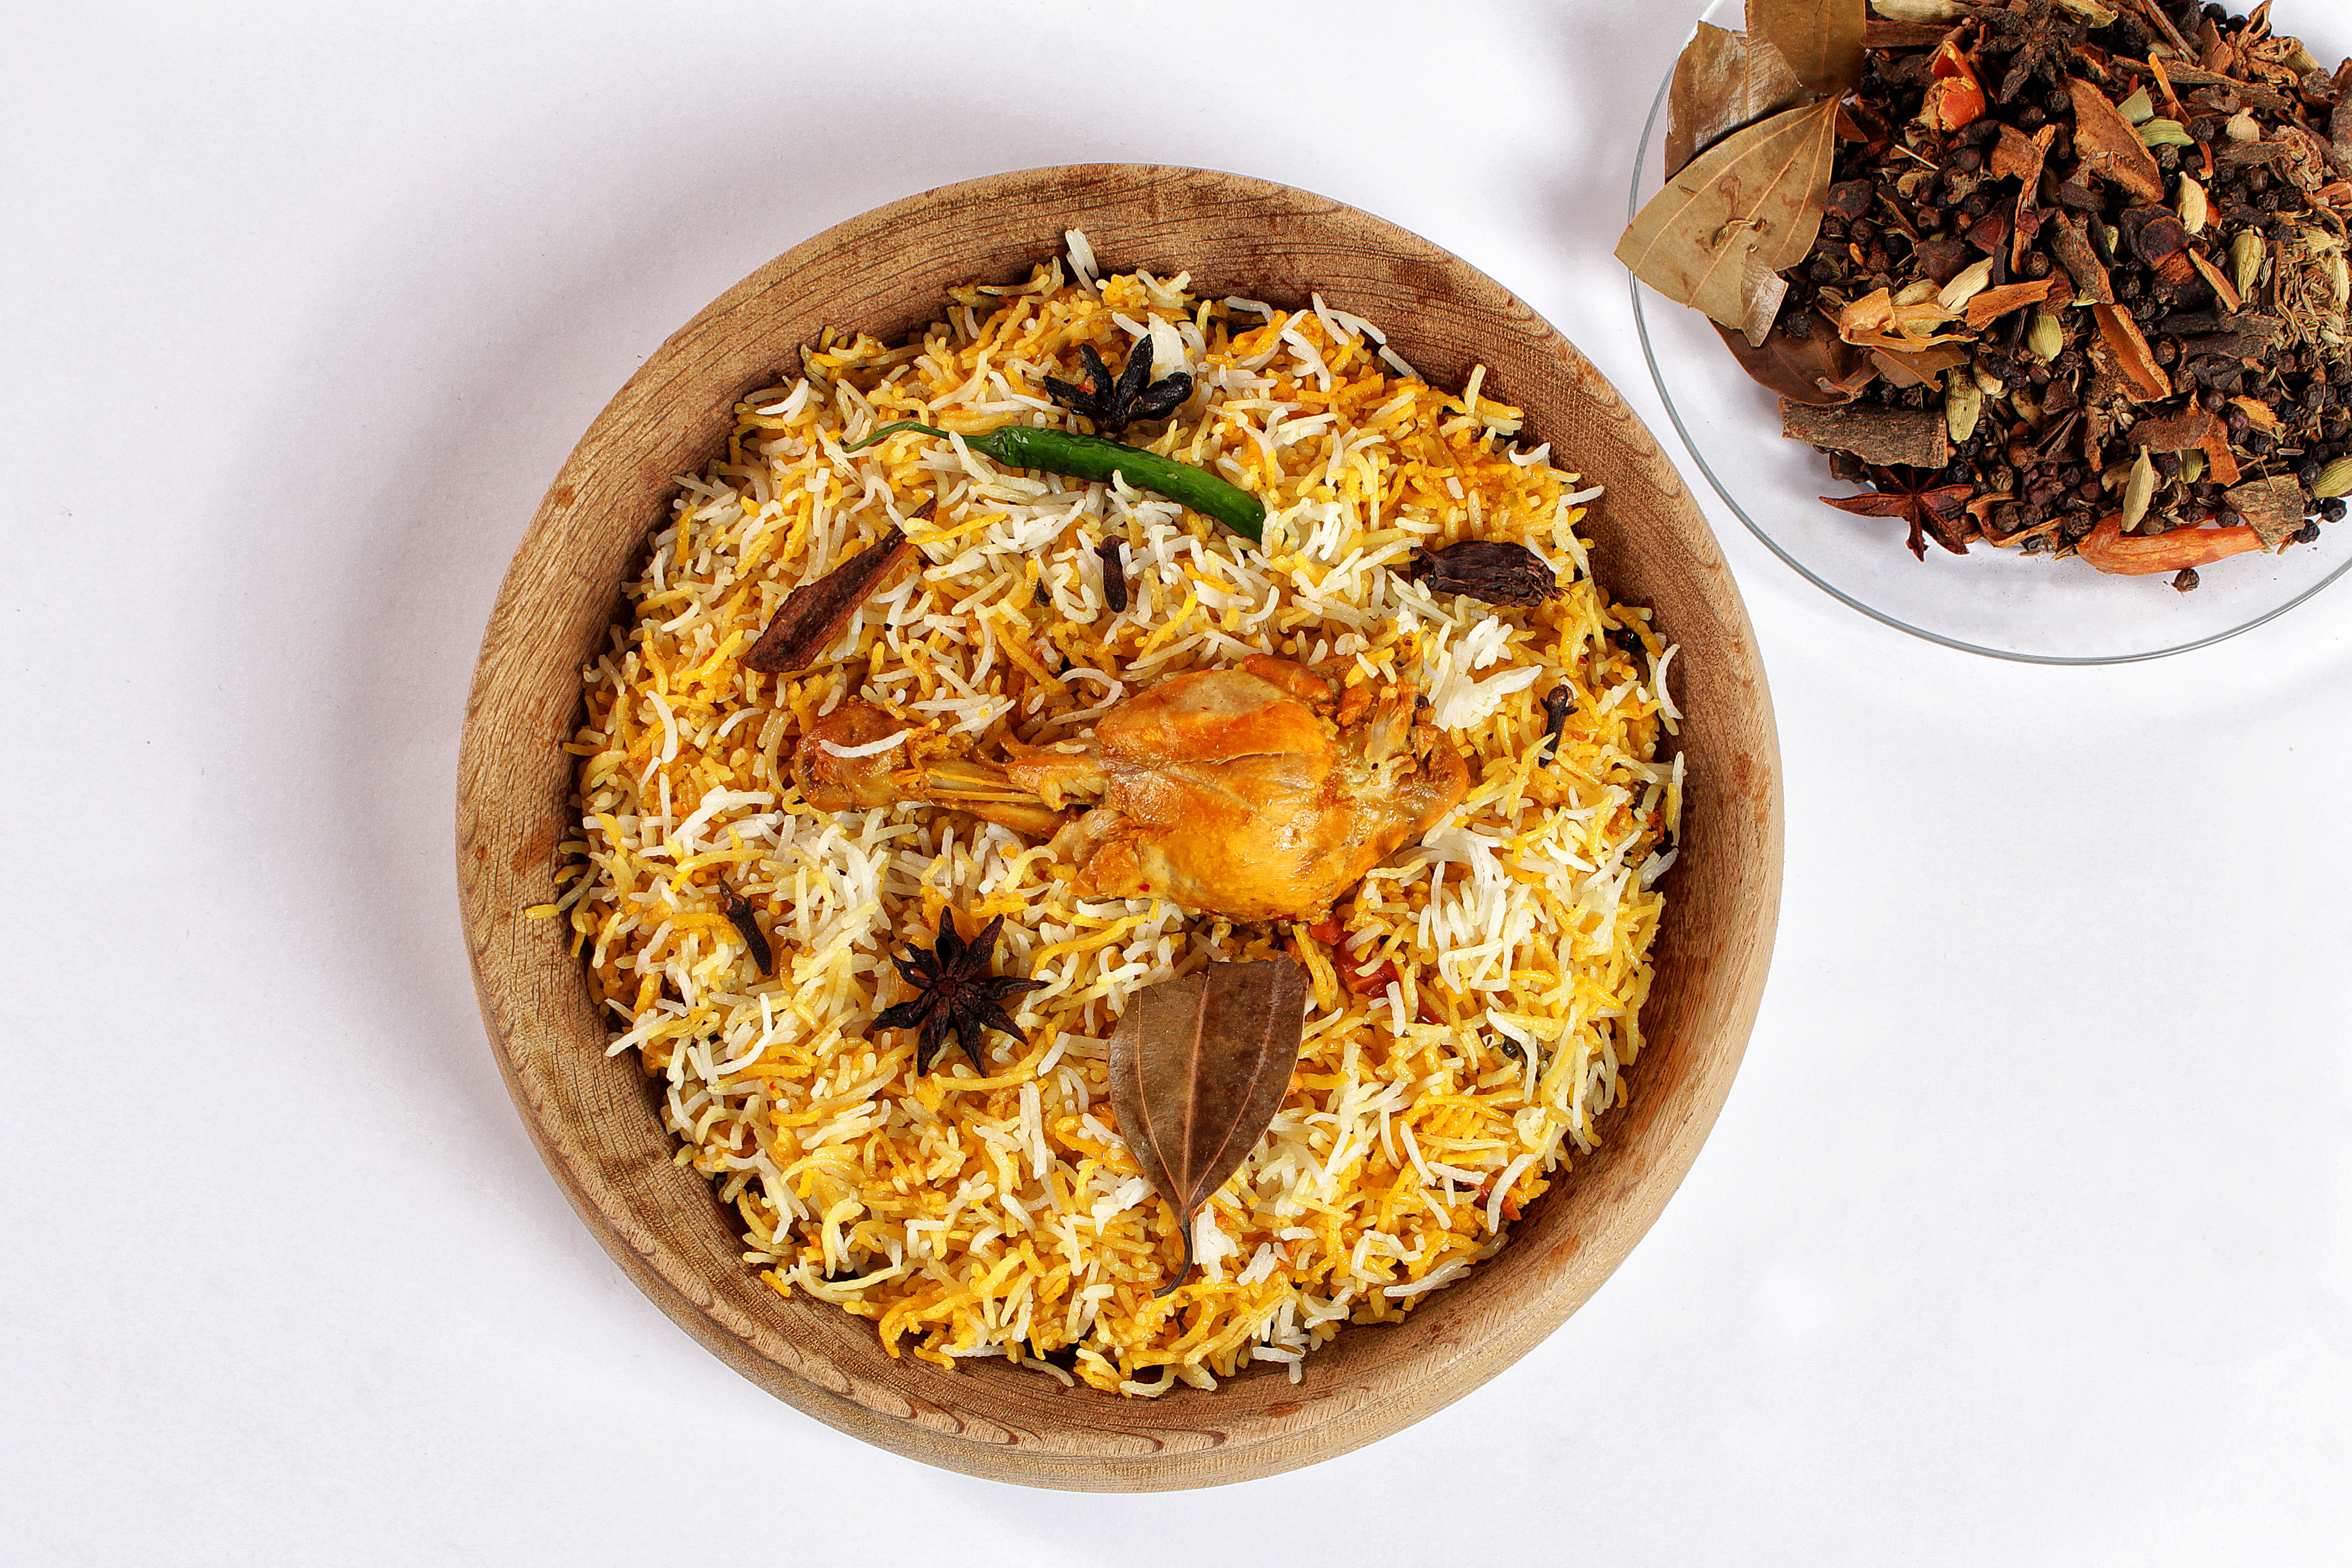 South Indian Restaurant Samy's Dosakall Will Open Its First U.S. Location in Houston